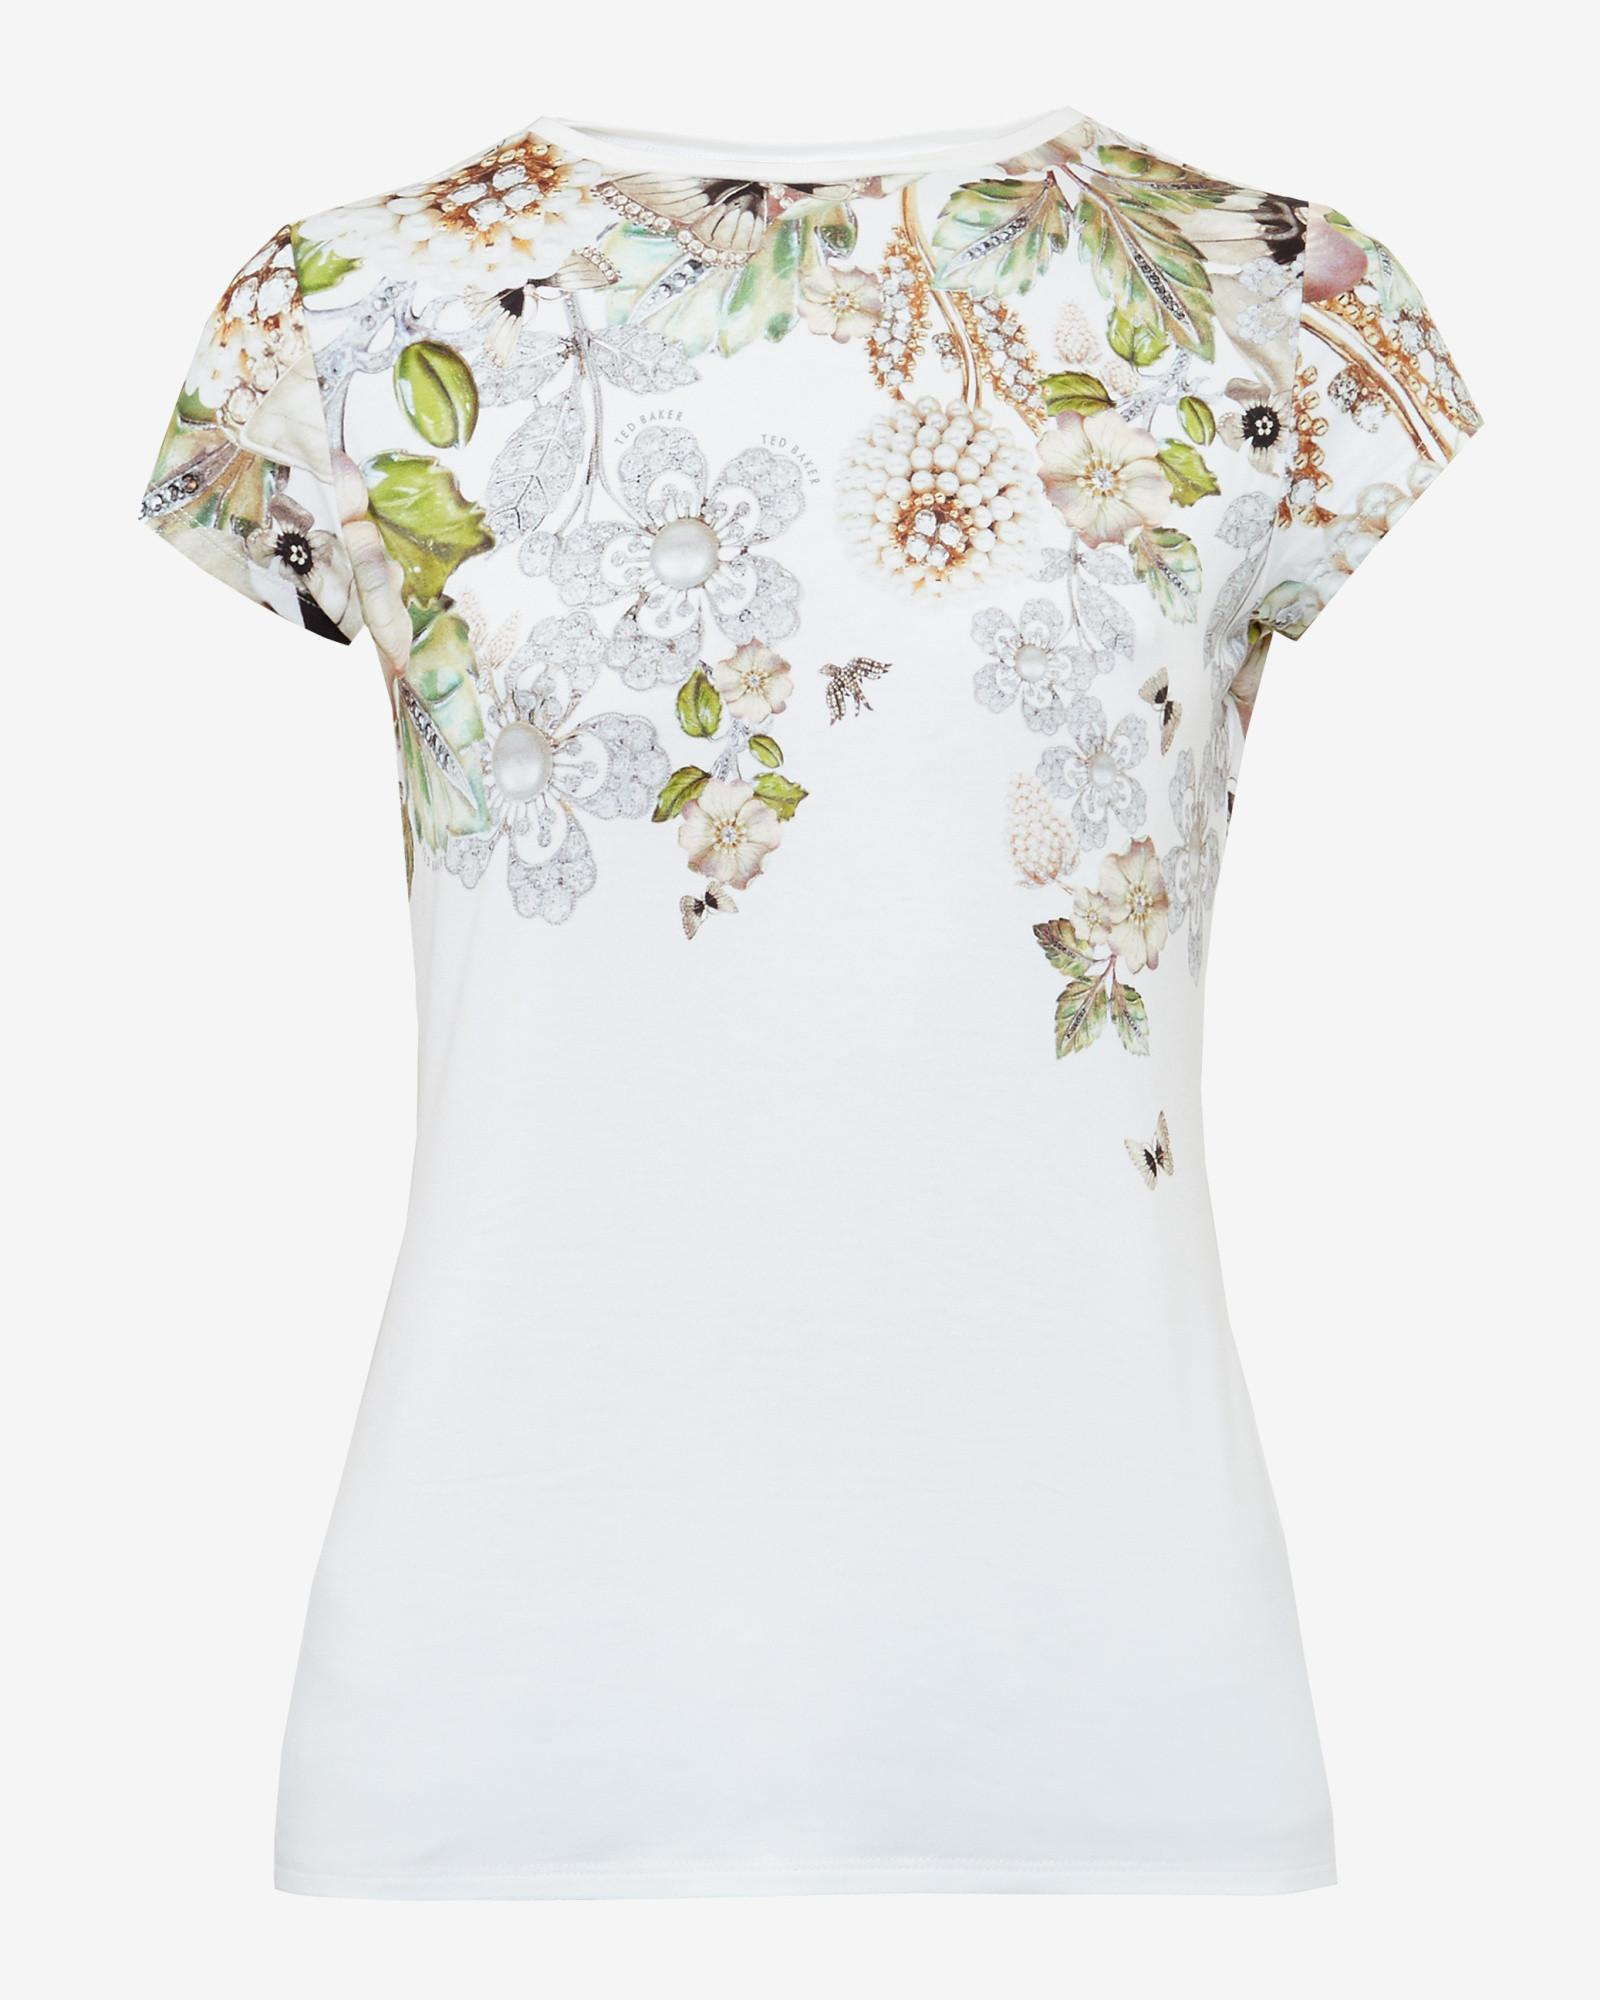 42271c0d8b4c Ted Baker Gem Gardens Fitted T-shirt in White - Lyst